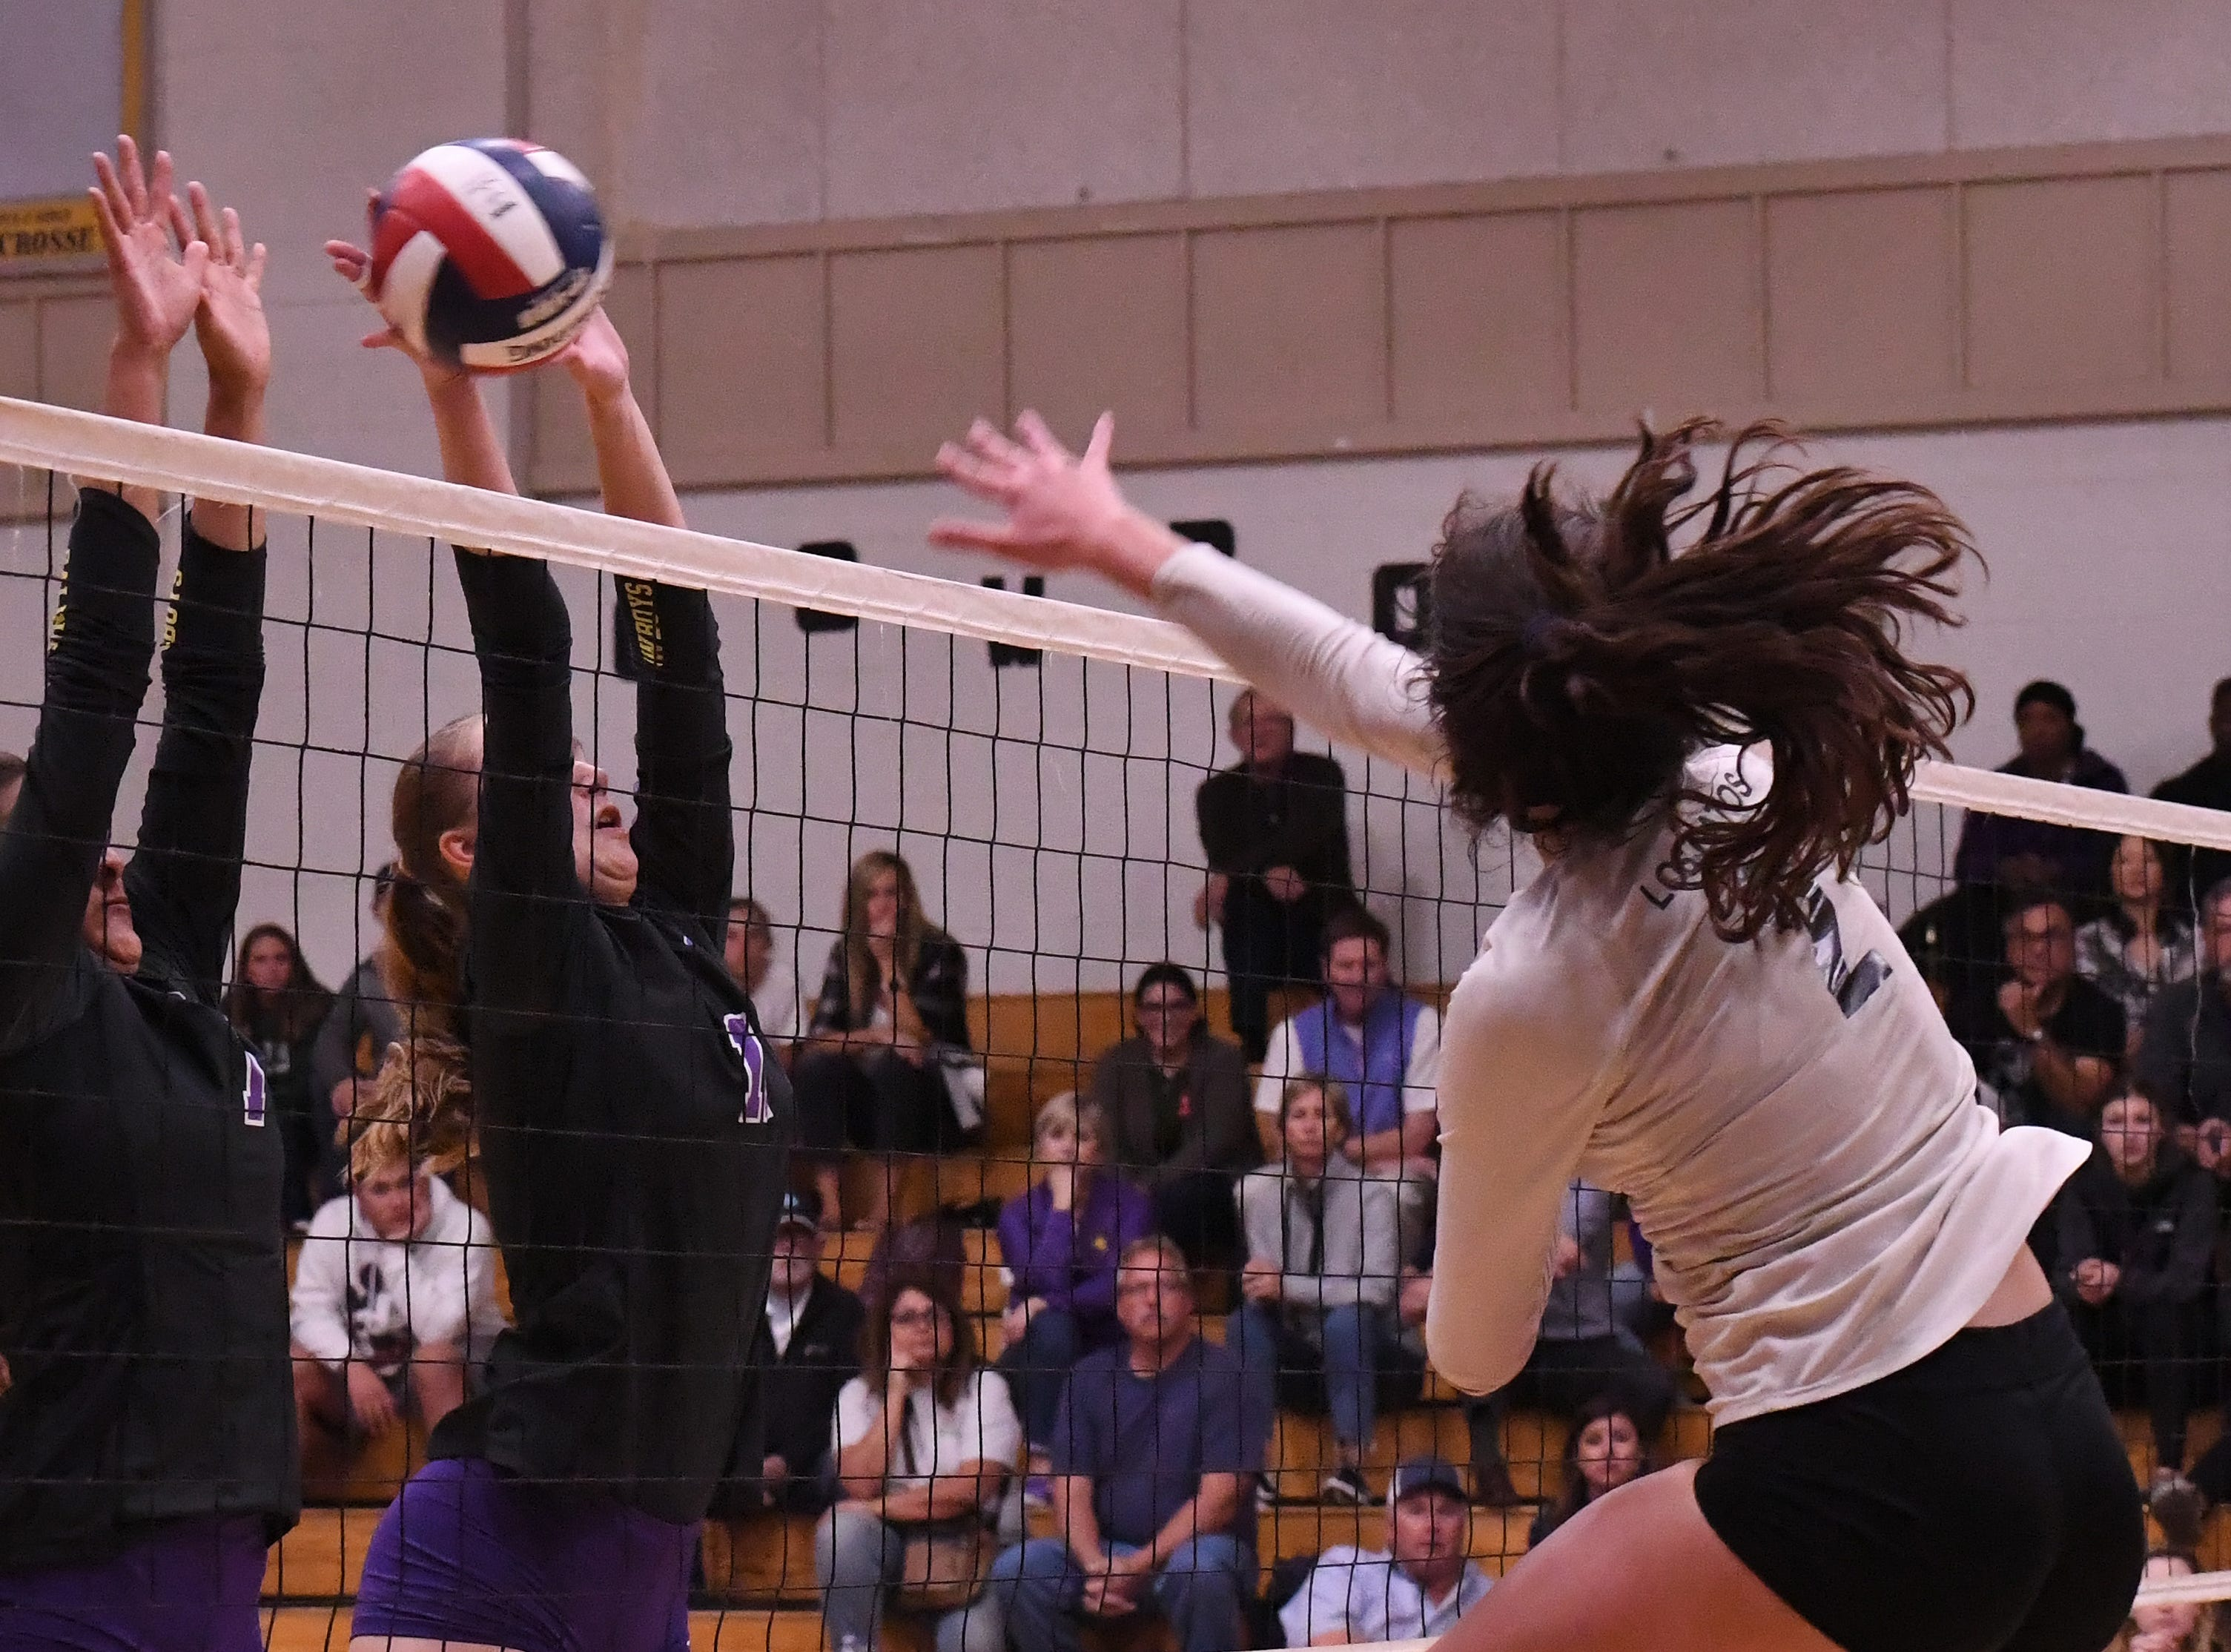 Senior setter Aloha Delk (1) and middle blocker Savannah Maker (11) reach for a spiked ball.